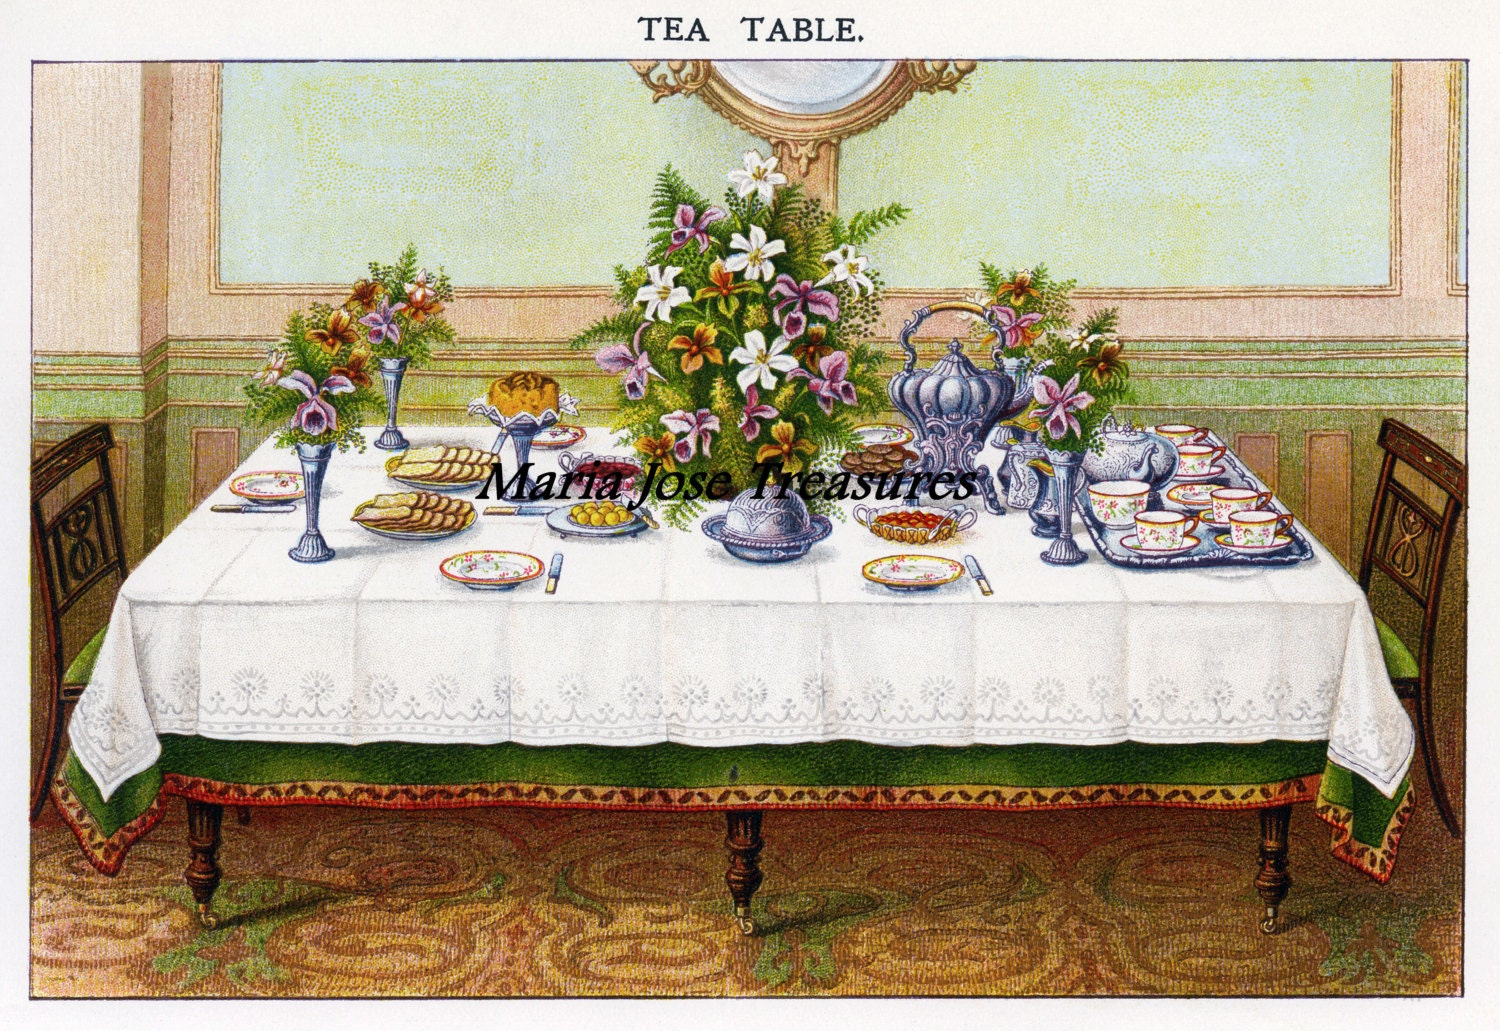 Vintage victorian table setting images 2 digital download for Edwardian table setting